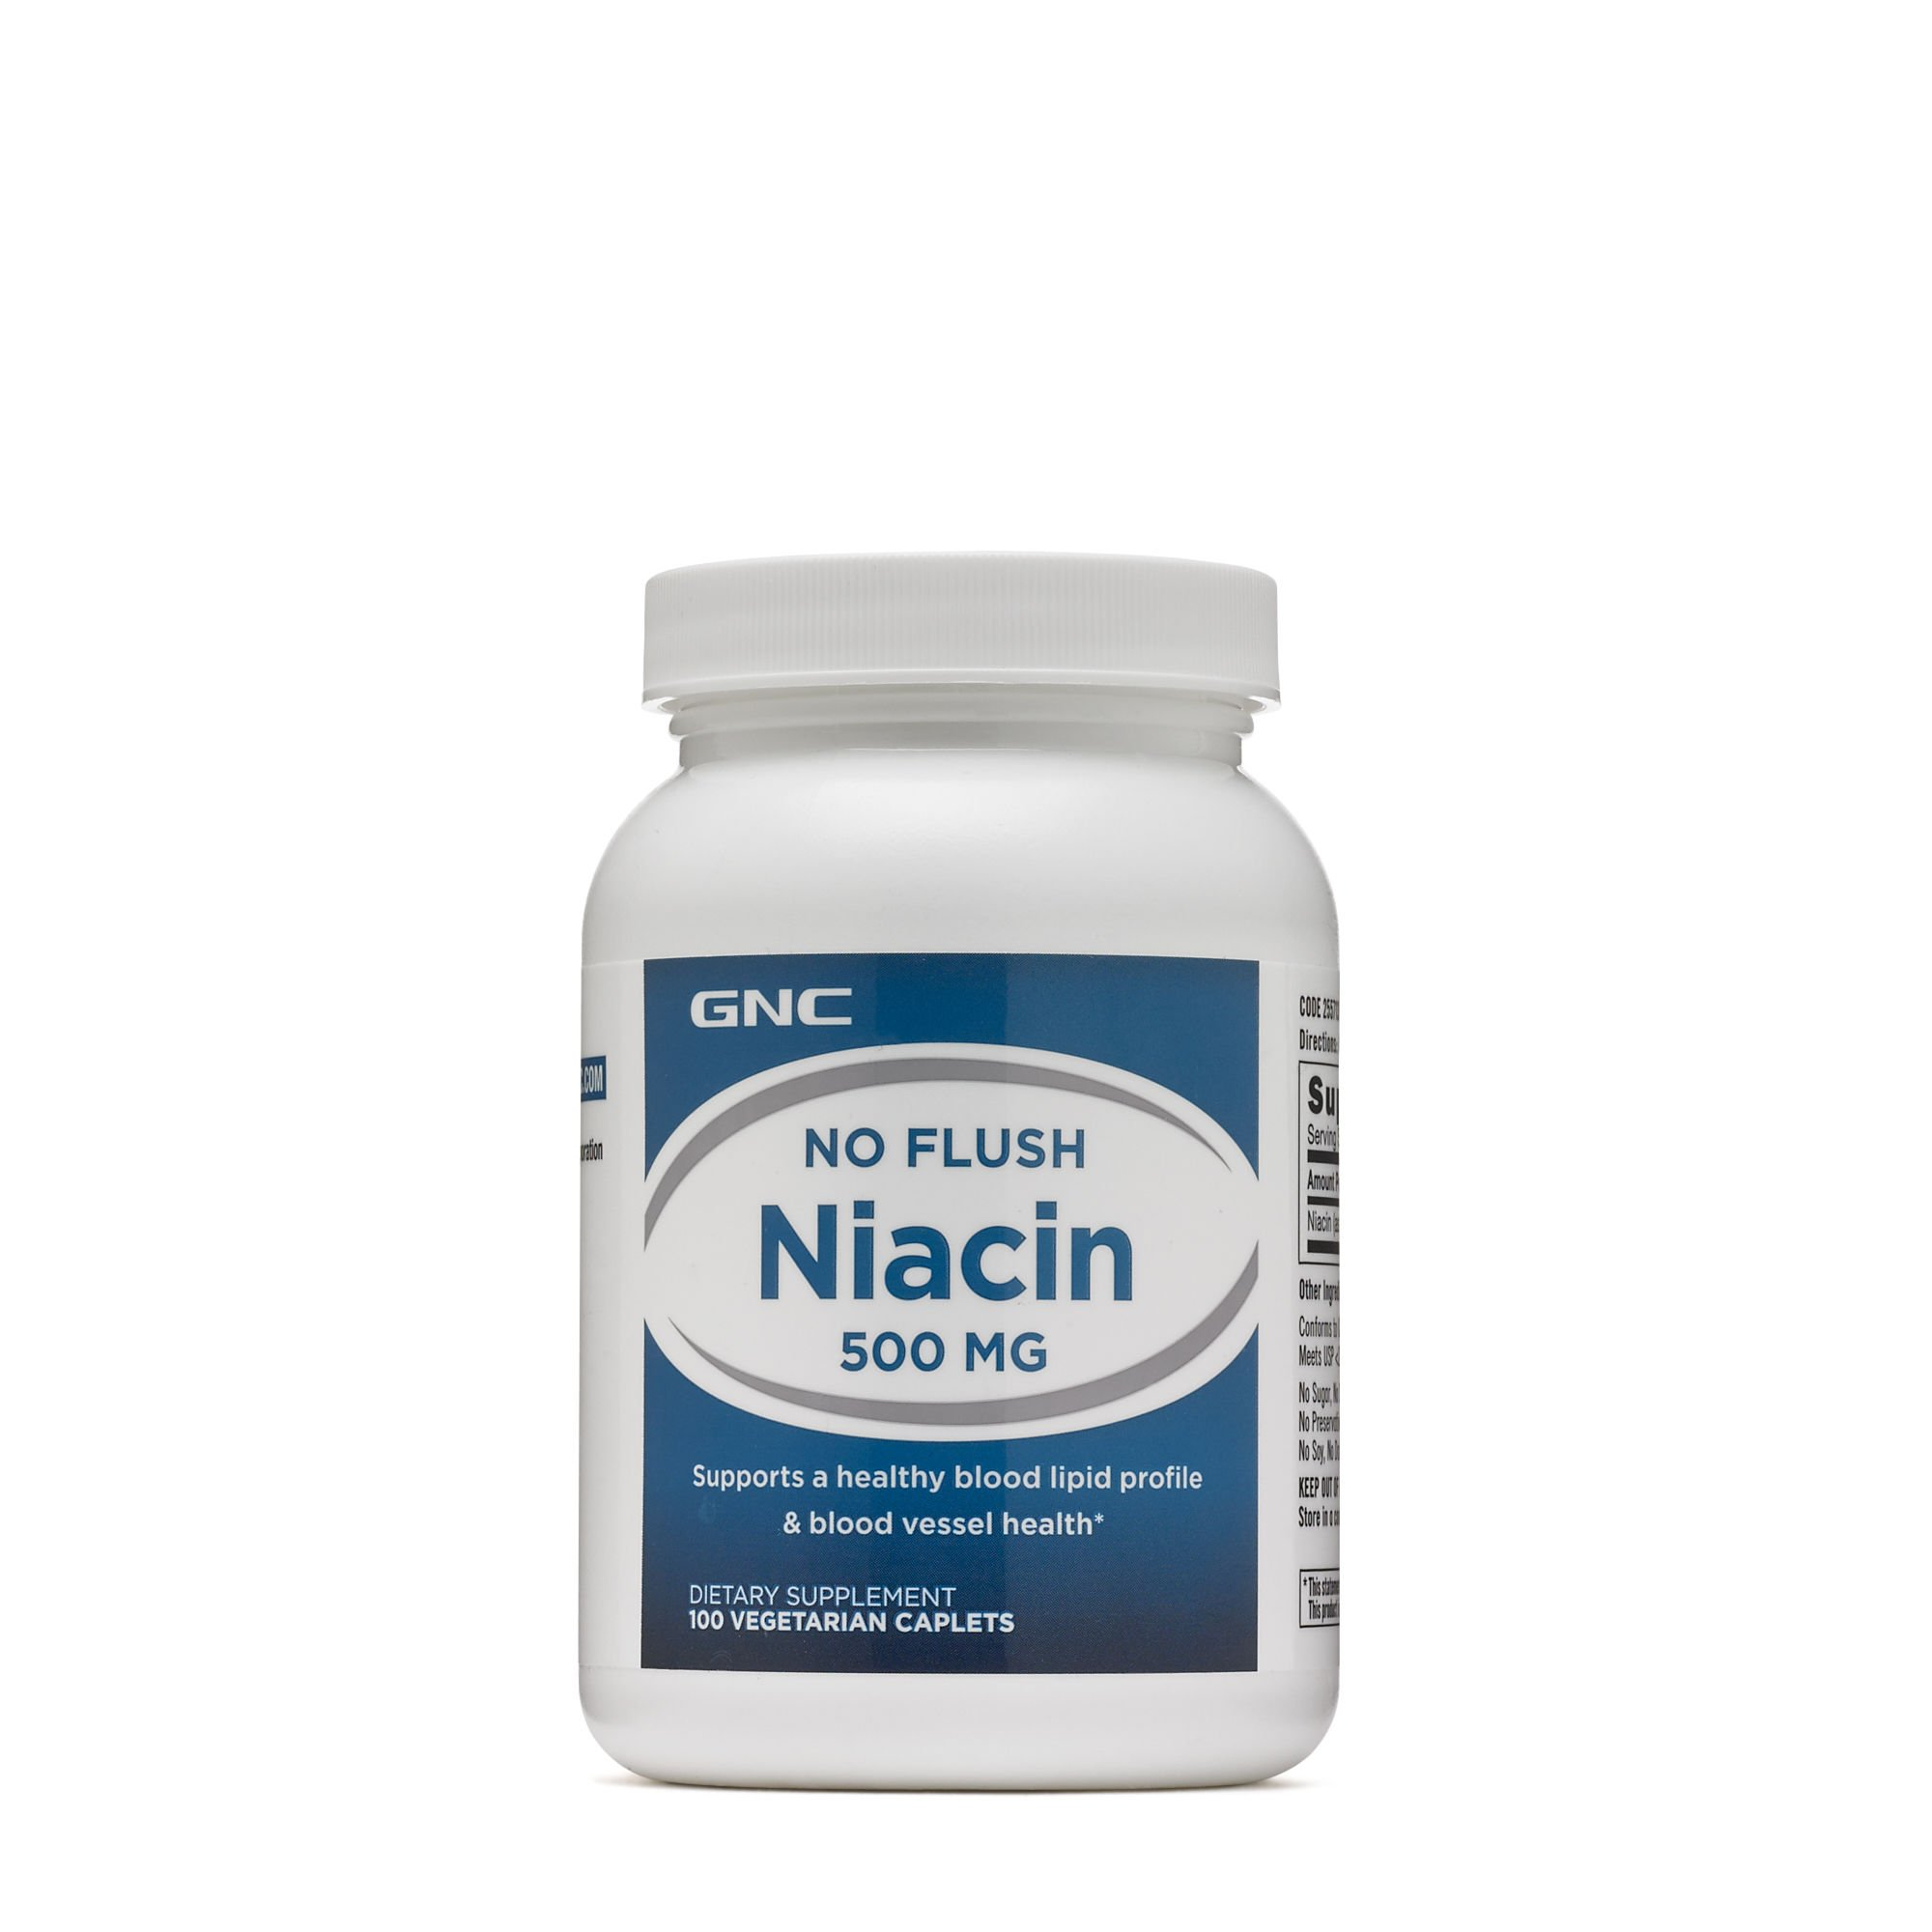 GNC No Flush Niacin 500mg, 100 Caplets, Supports Blood Vessel Health